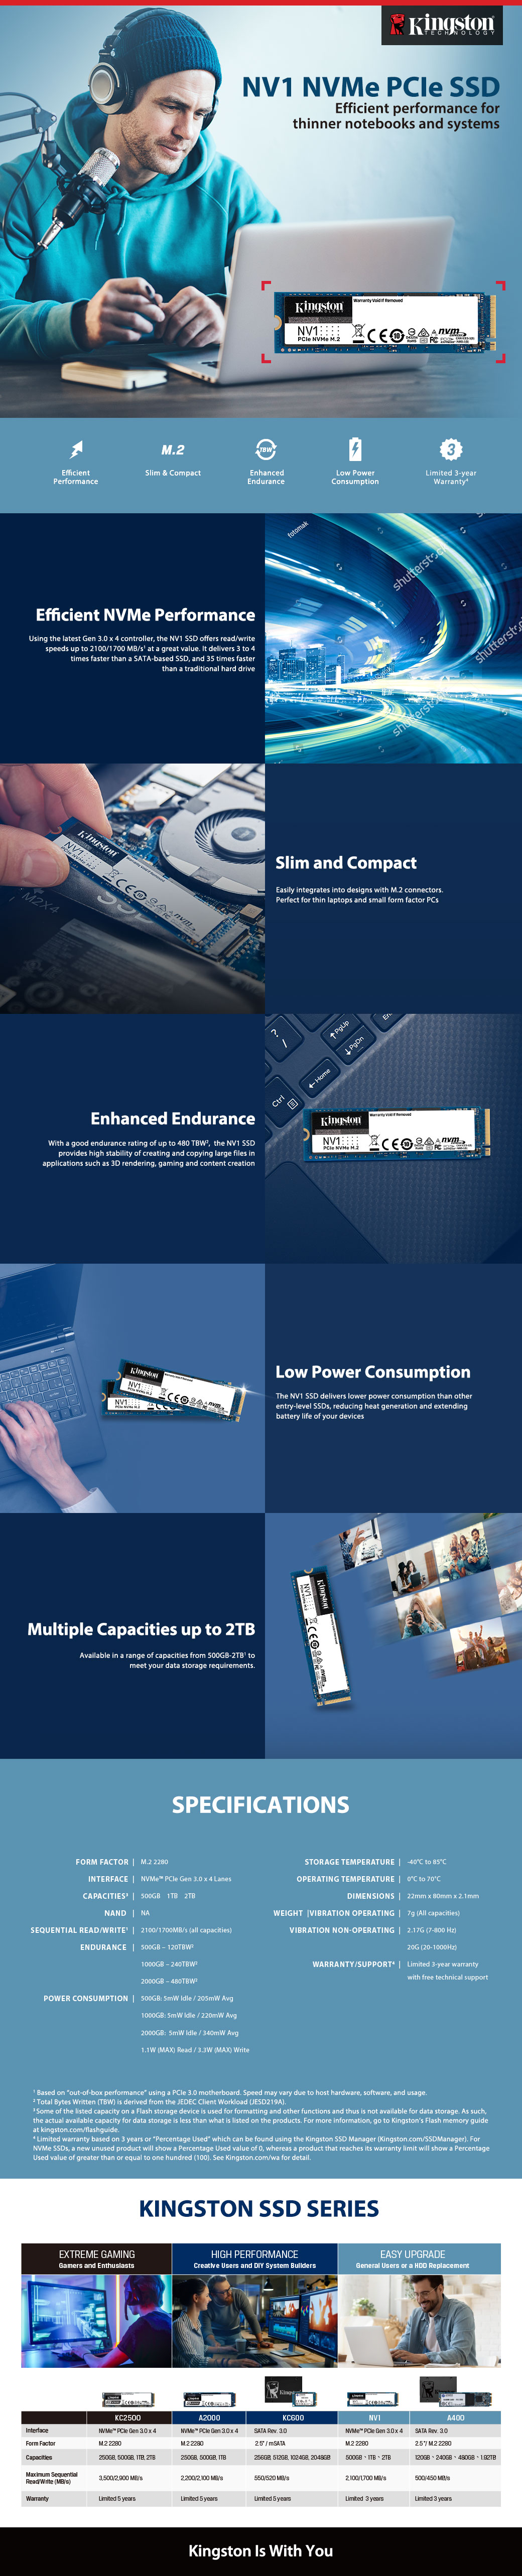 A large marketing image providing additional information about the product Kingston NV1 2TB NVMe M.2 SSD - Additional alt info not provided